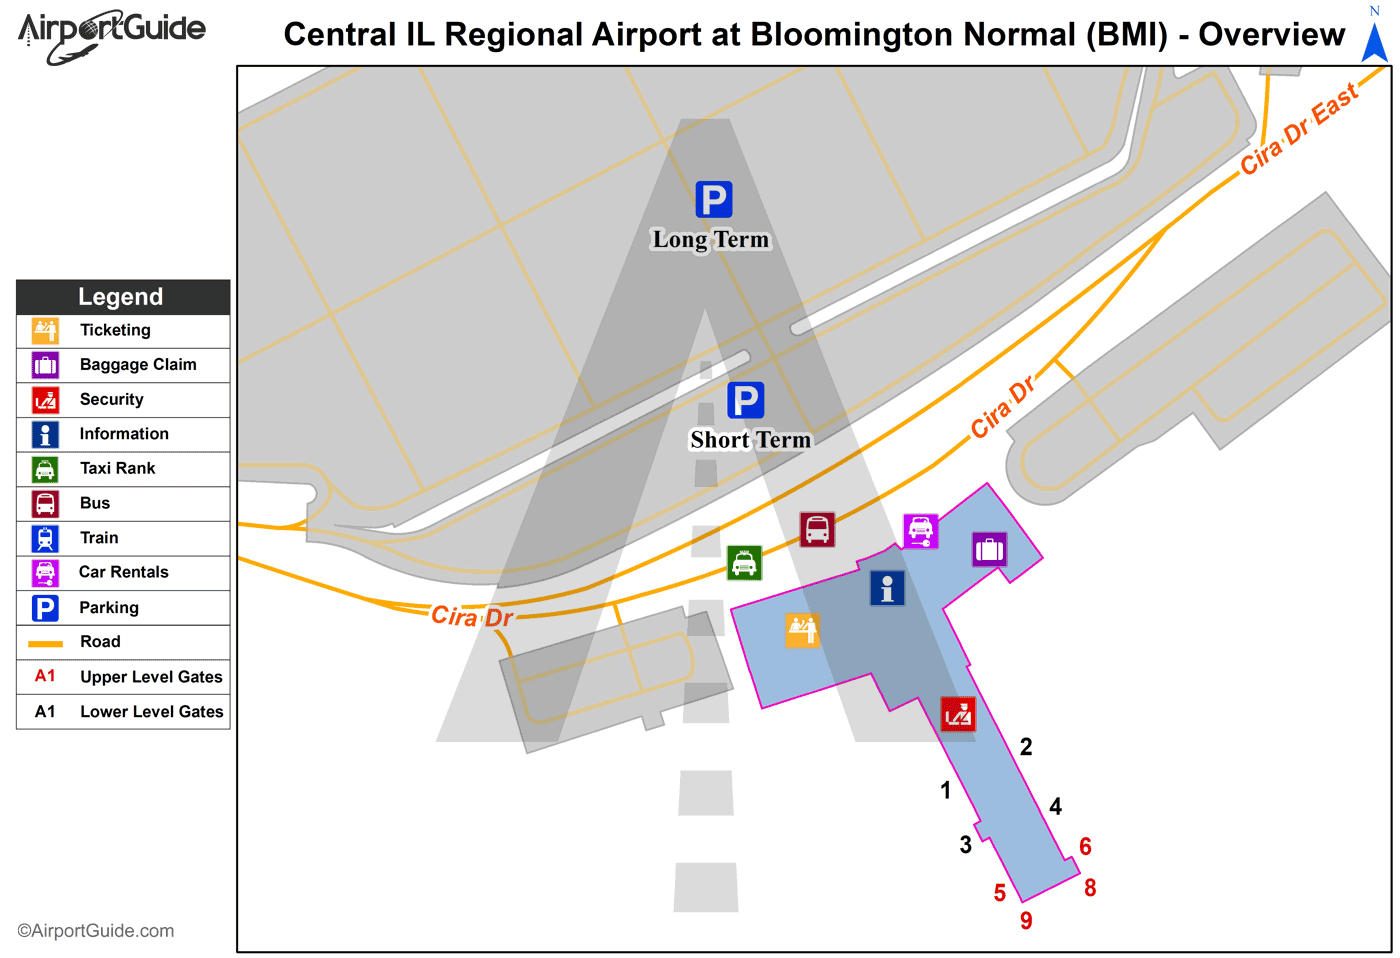 Bloomington/Normal - Central Il Regional Airport At Bloomington-Normal (BMI) Airport Terminal Map - Overview